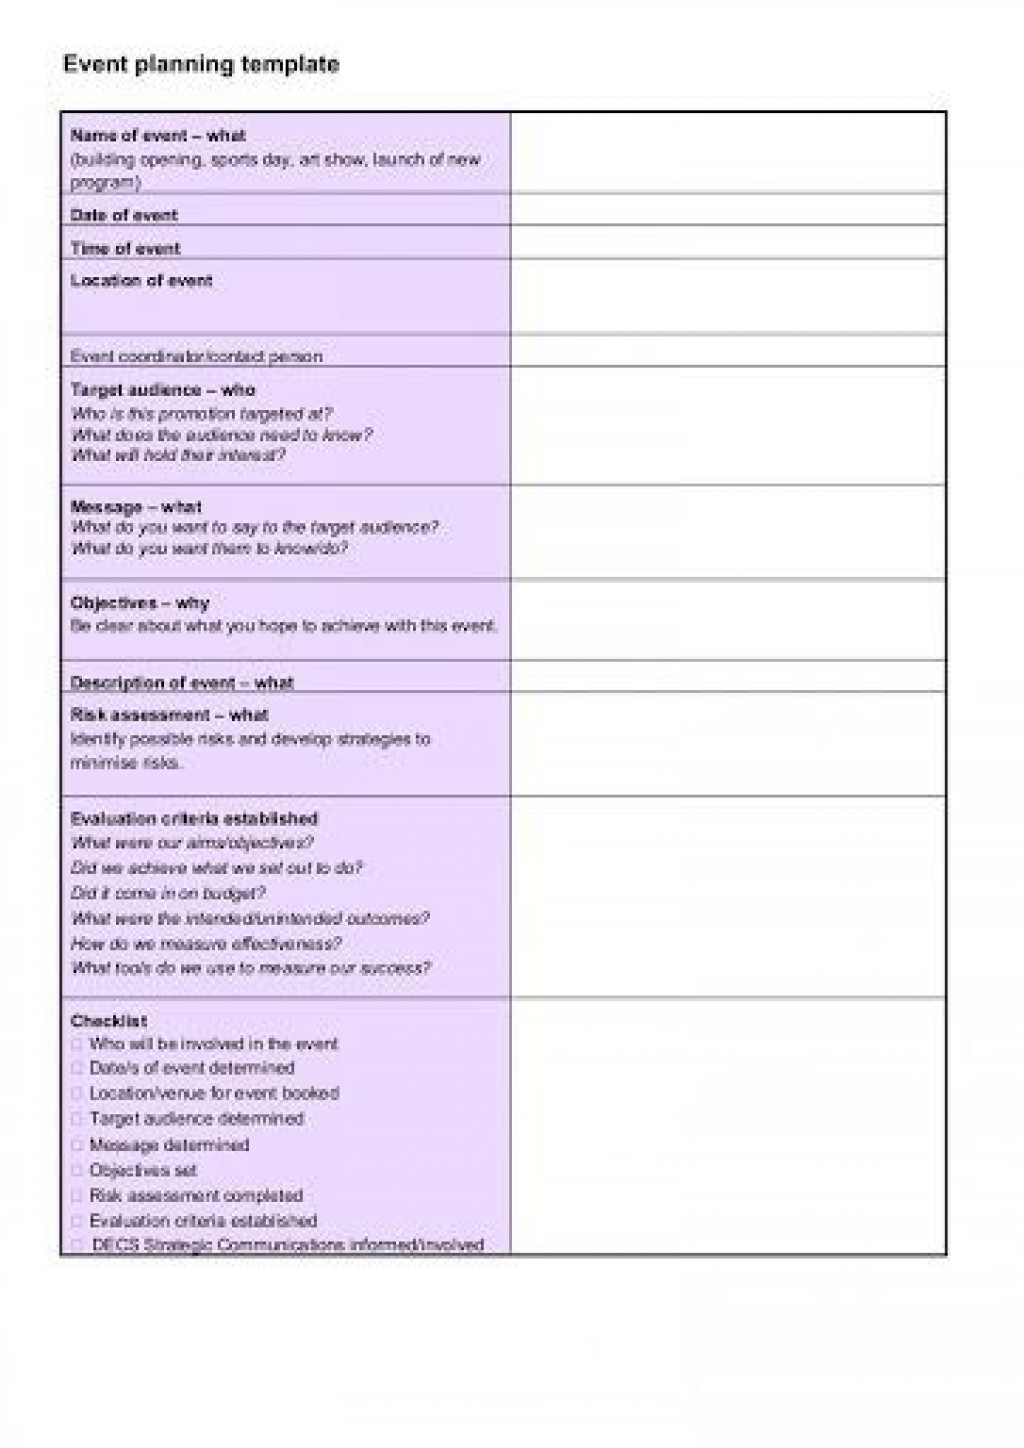 009 Excellent Free Event Planning Template Checklist Image  Planner PartyLarge